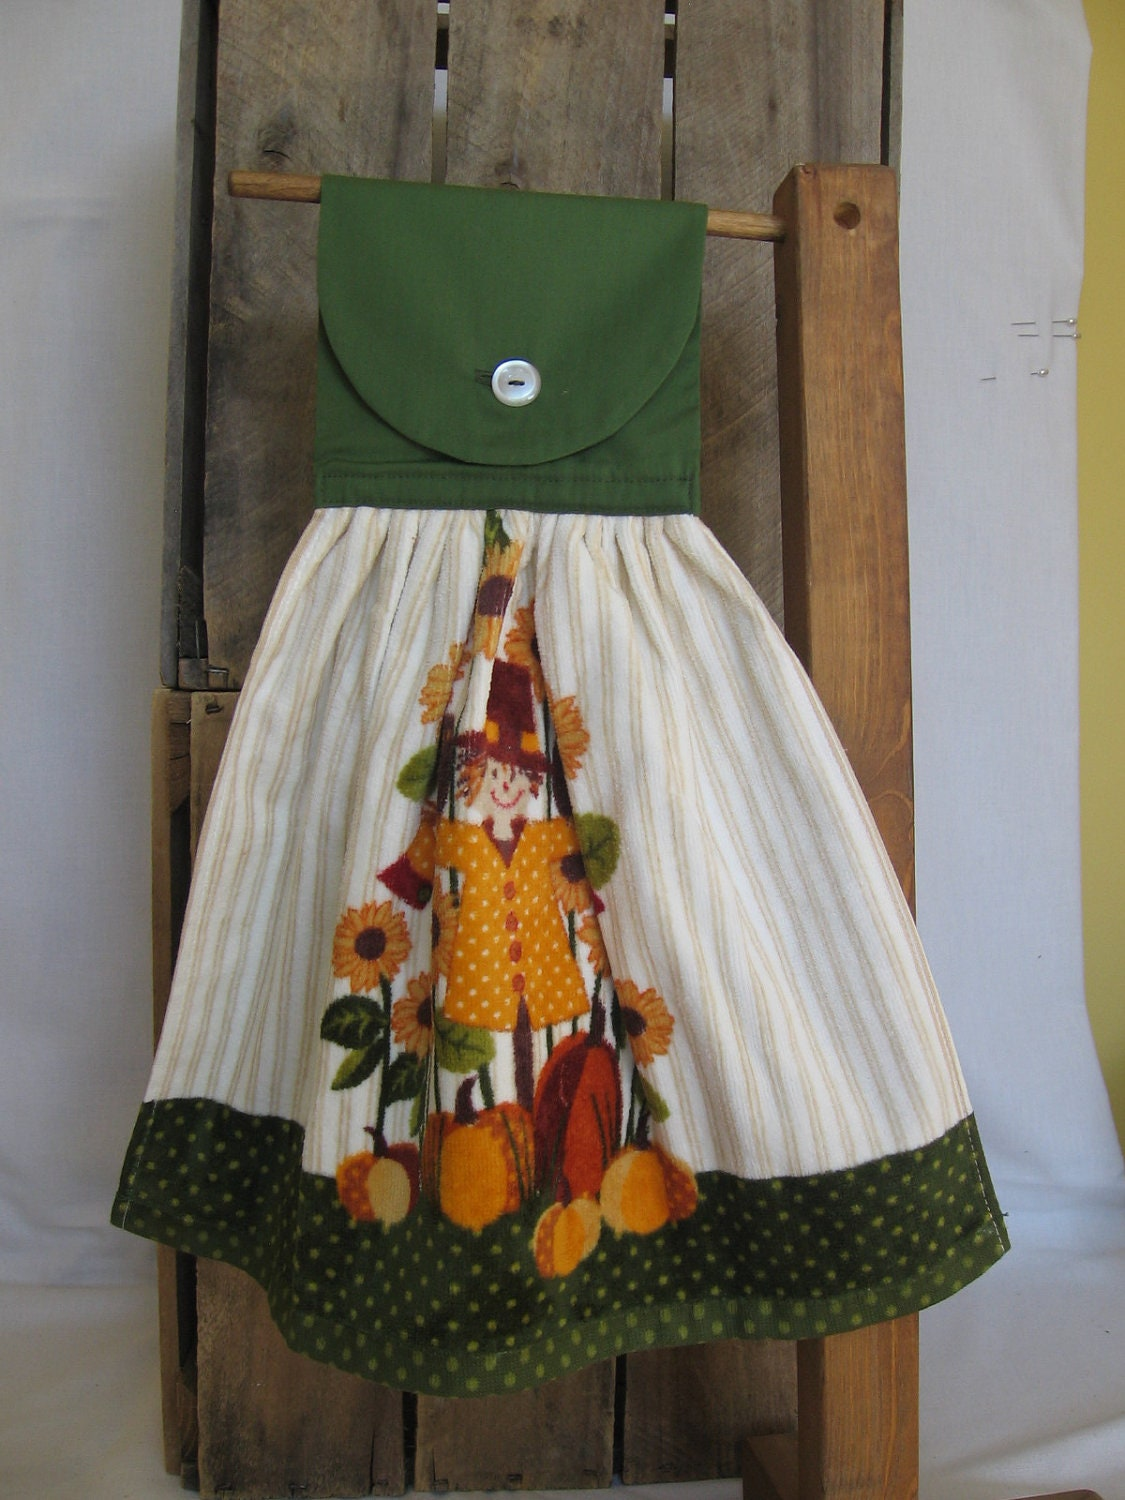 Scarecrow Kitchen Tea Towel U-Pick Top Color Hanging Kitchen Towel with Sunflowers and Scarecrow - SnowNoseCrafts